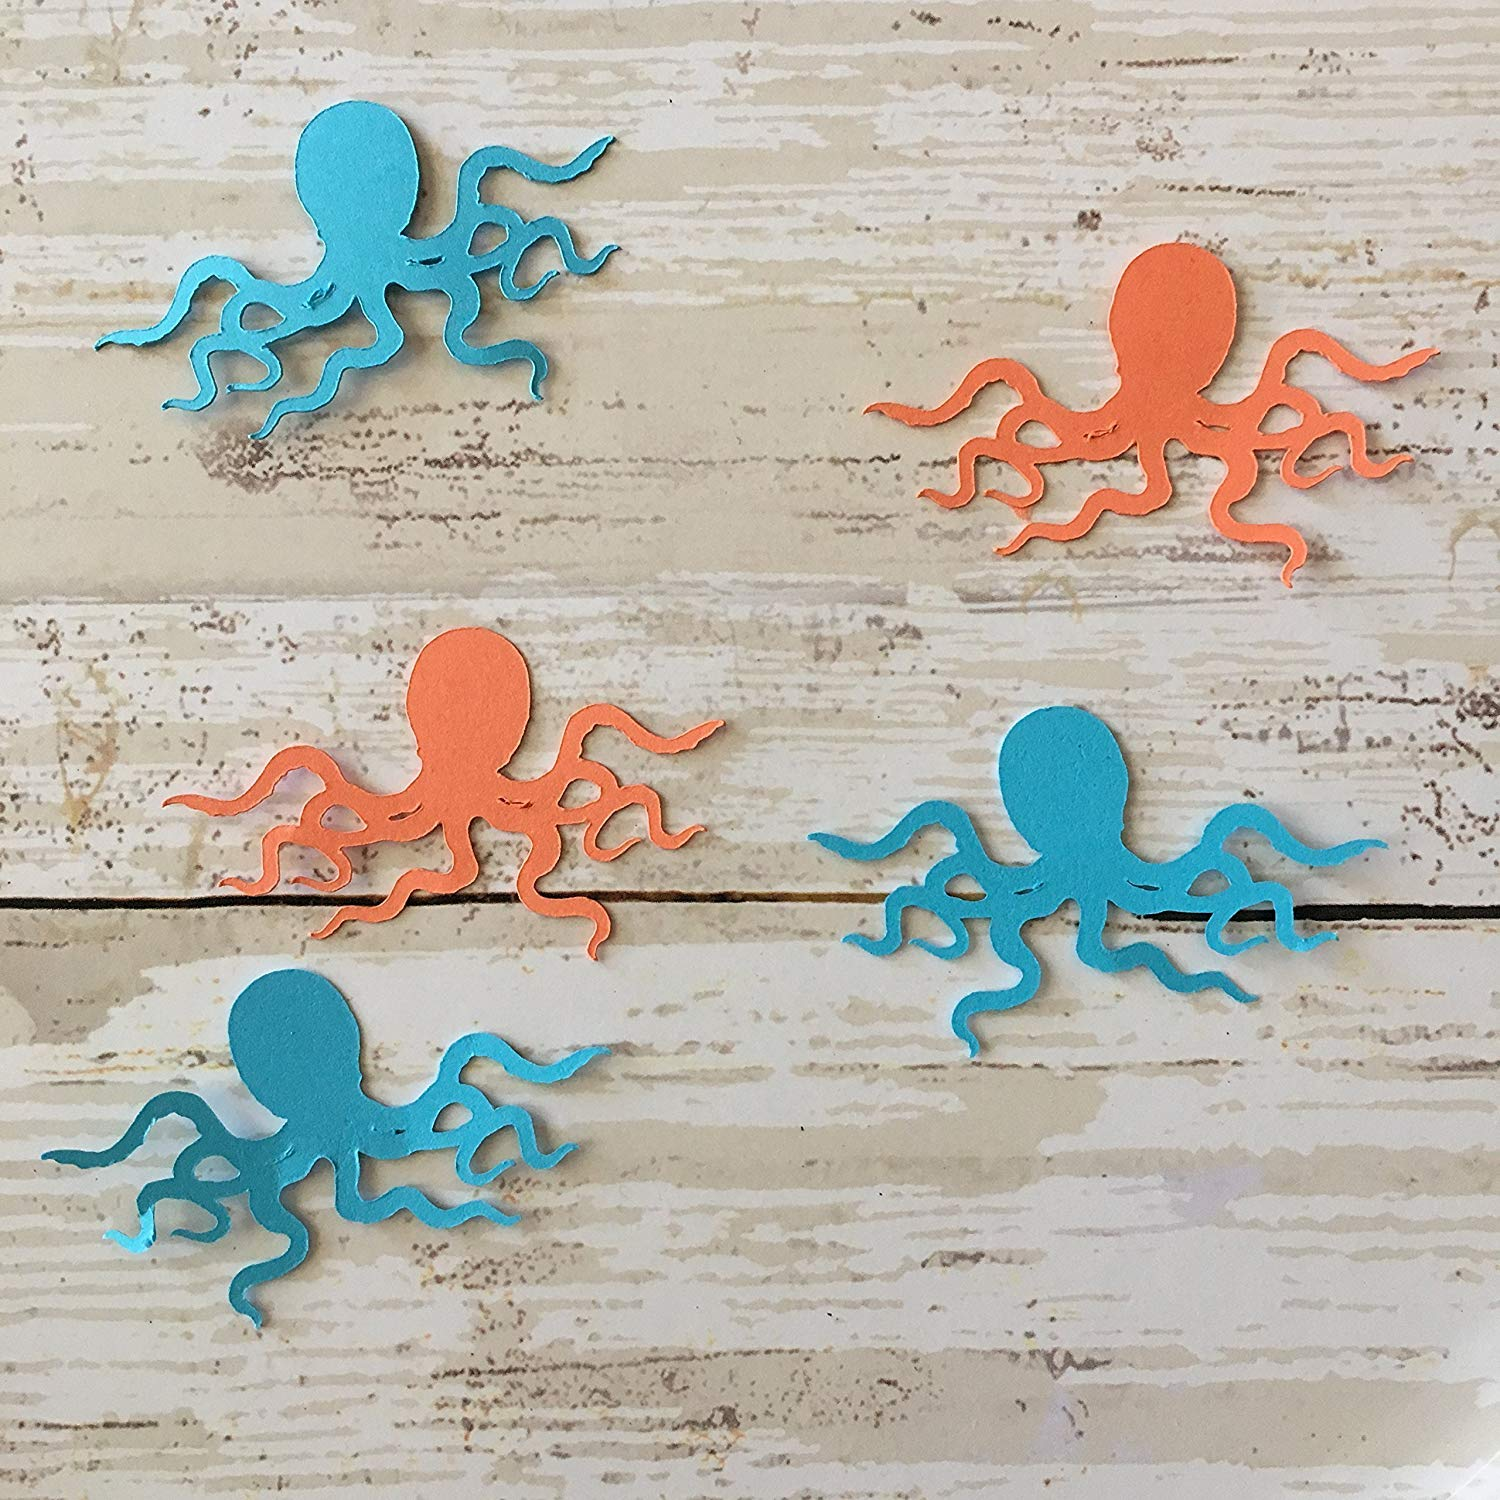 Ocean Party Supplies Table Scatter Animal Party Supplies Beluga Whale Cut Out Whale Cut Outs Ocean Decorations Beluga Whale Confetti Whale Theme